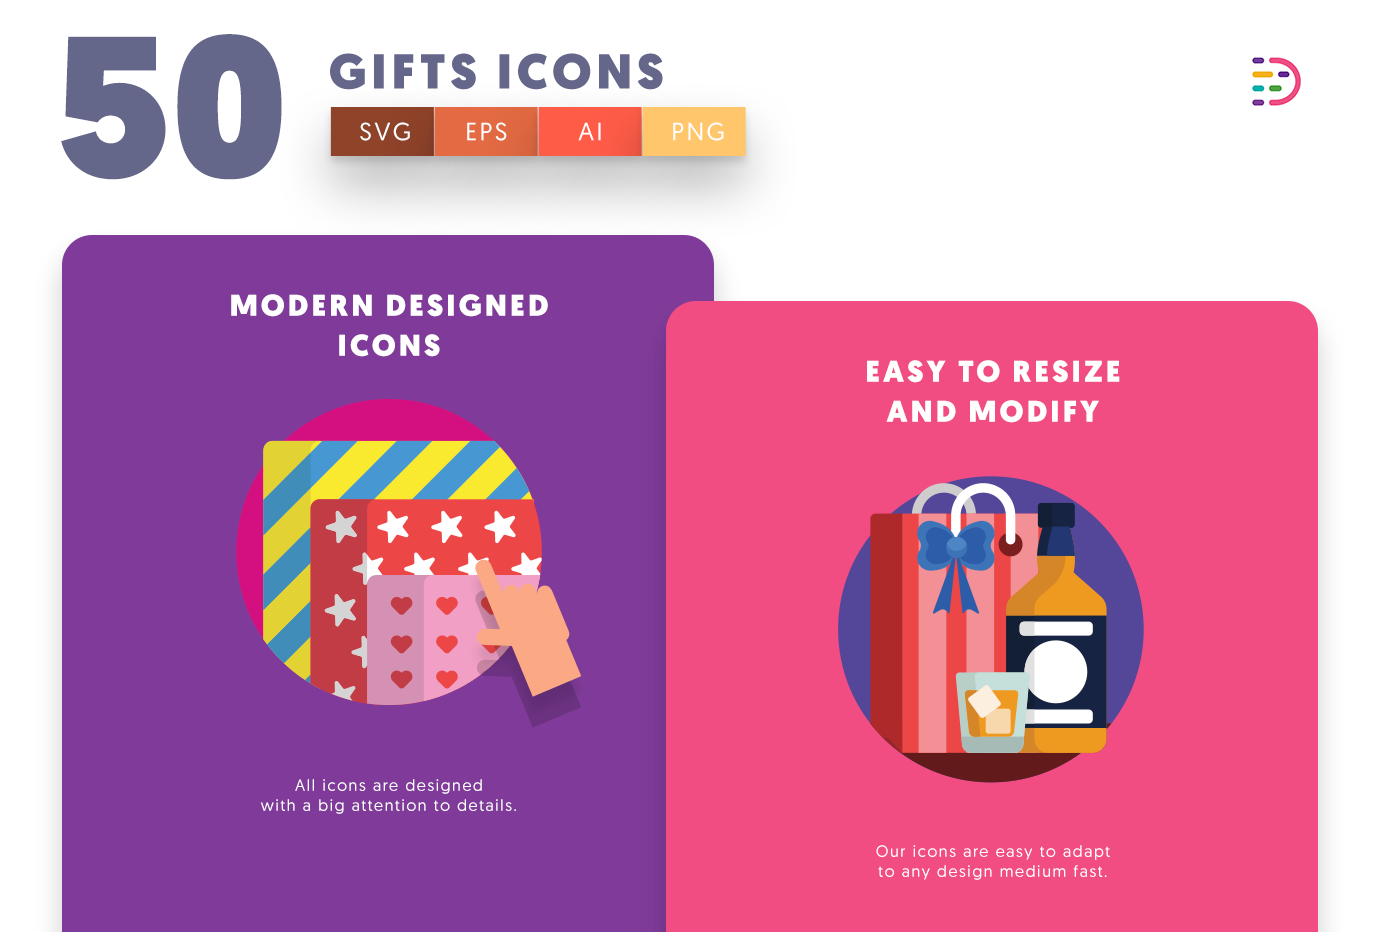 Gifts icons png/svg/eps